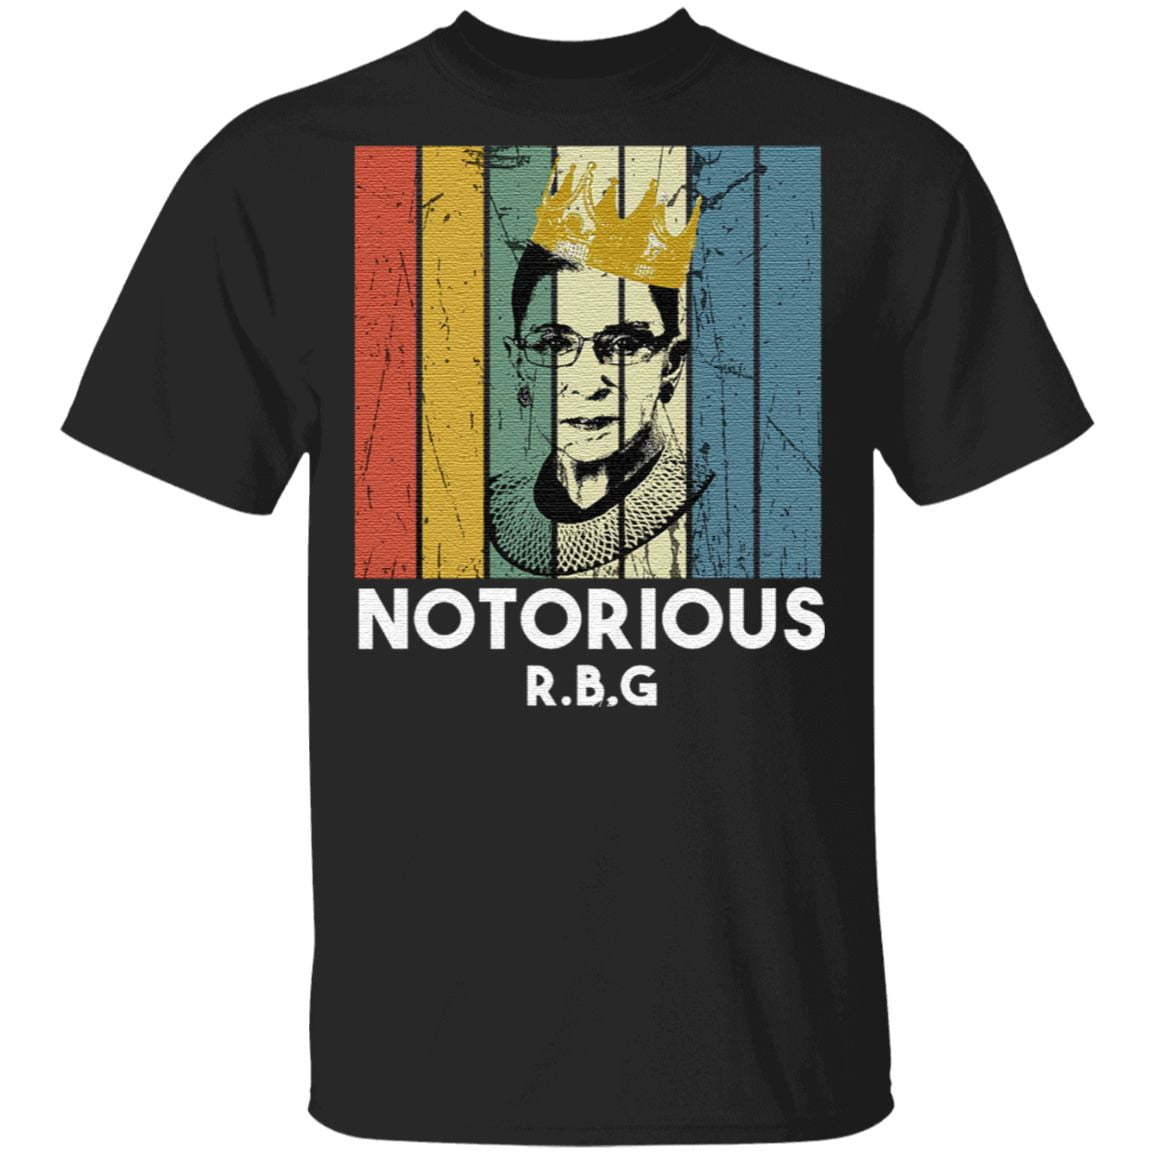 Notorious rbg shirt speak your mind even if your voice shakes t shirt